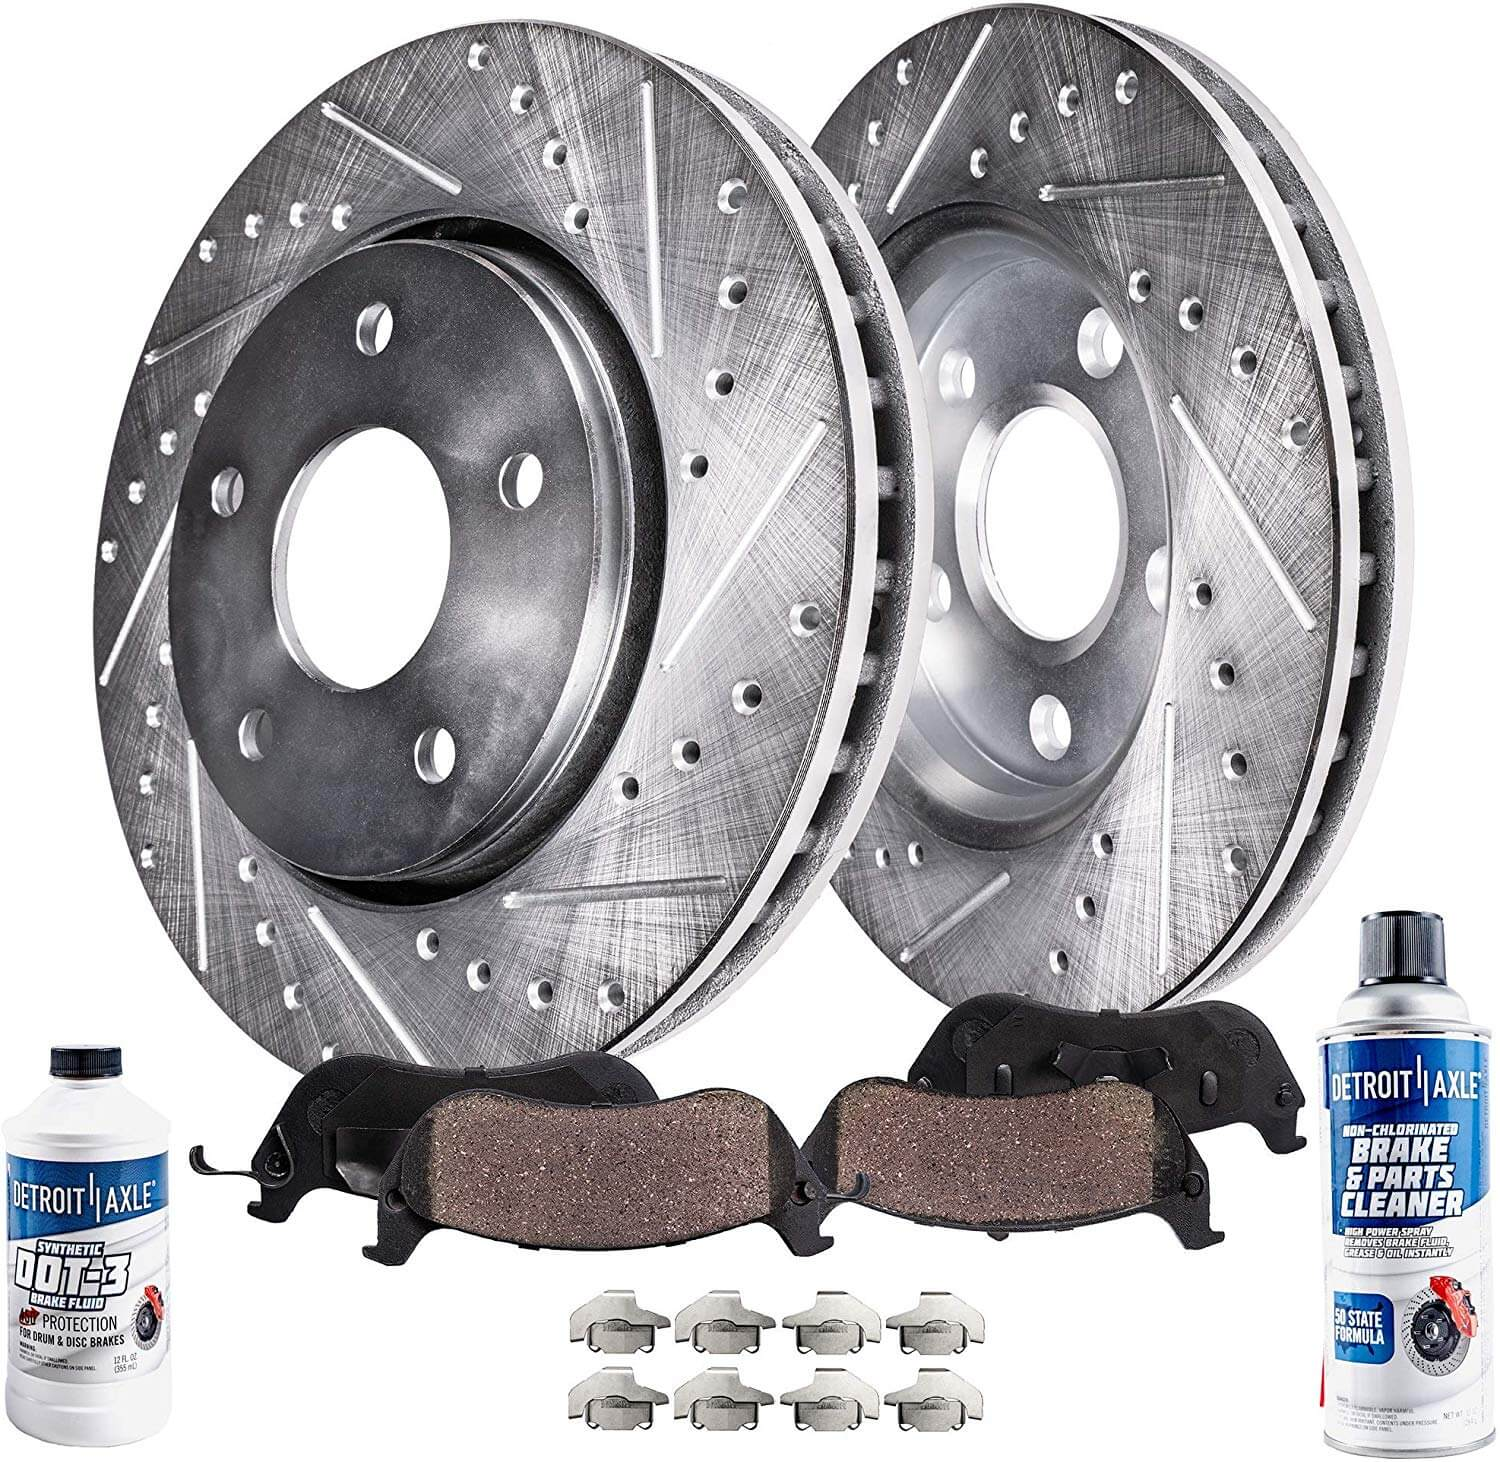 2011 2012 For Ford Escape Coated Front /& Rear Brake Rotors /& Pads